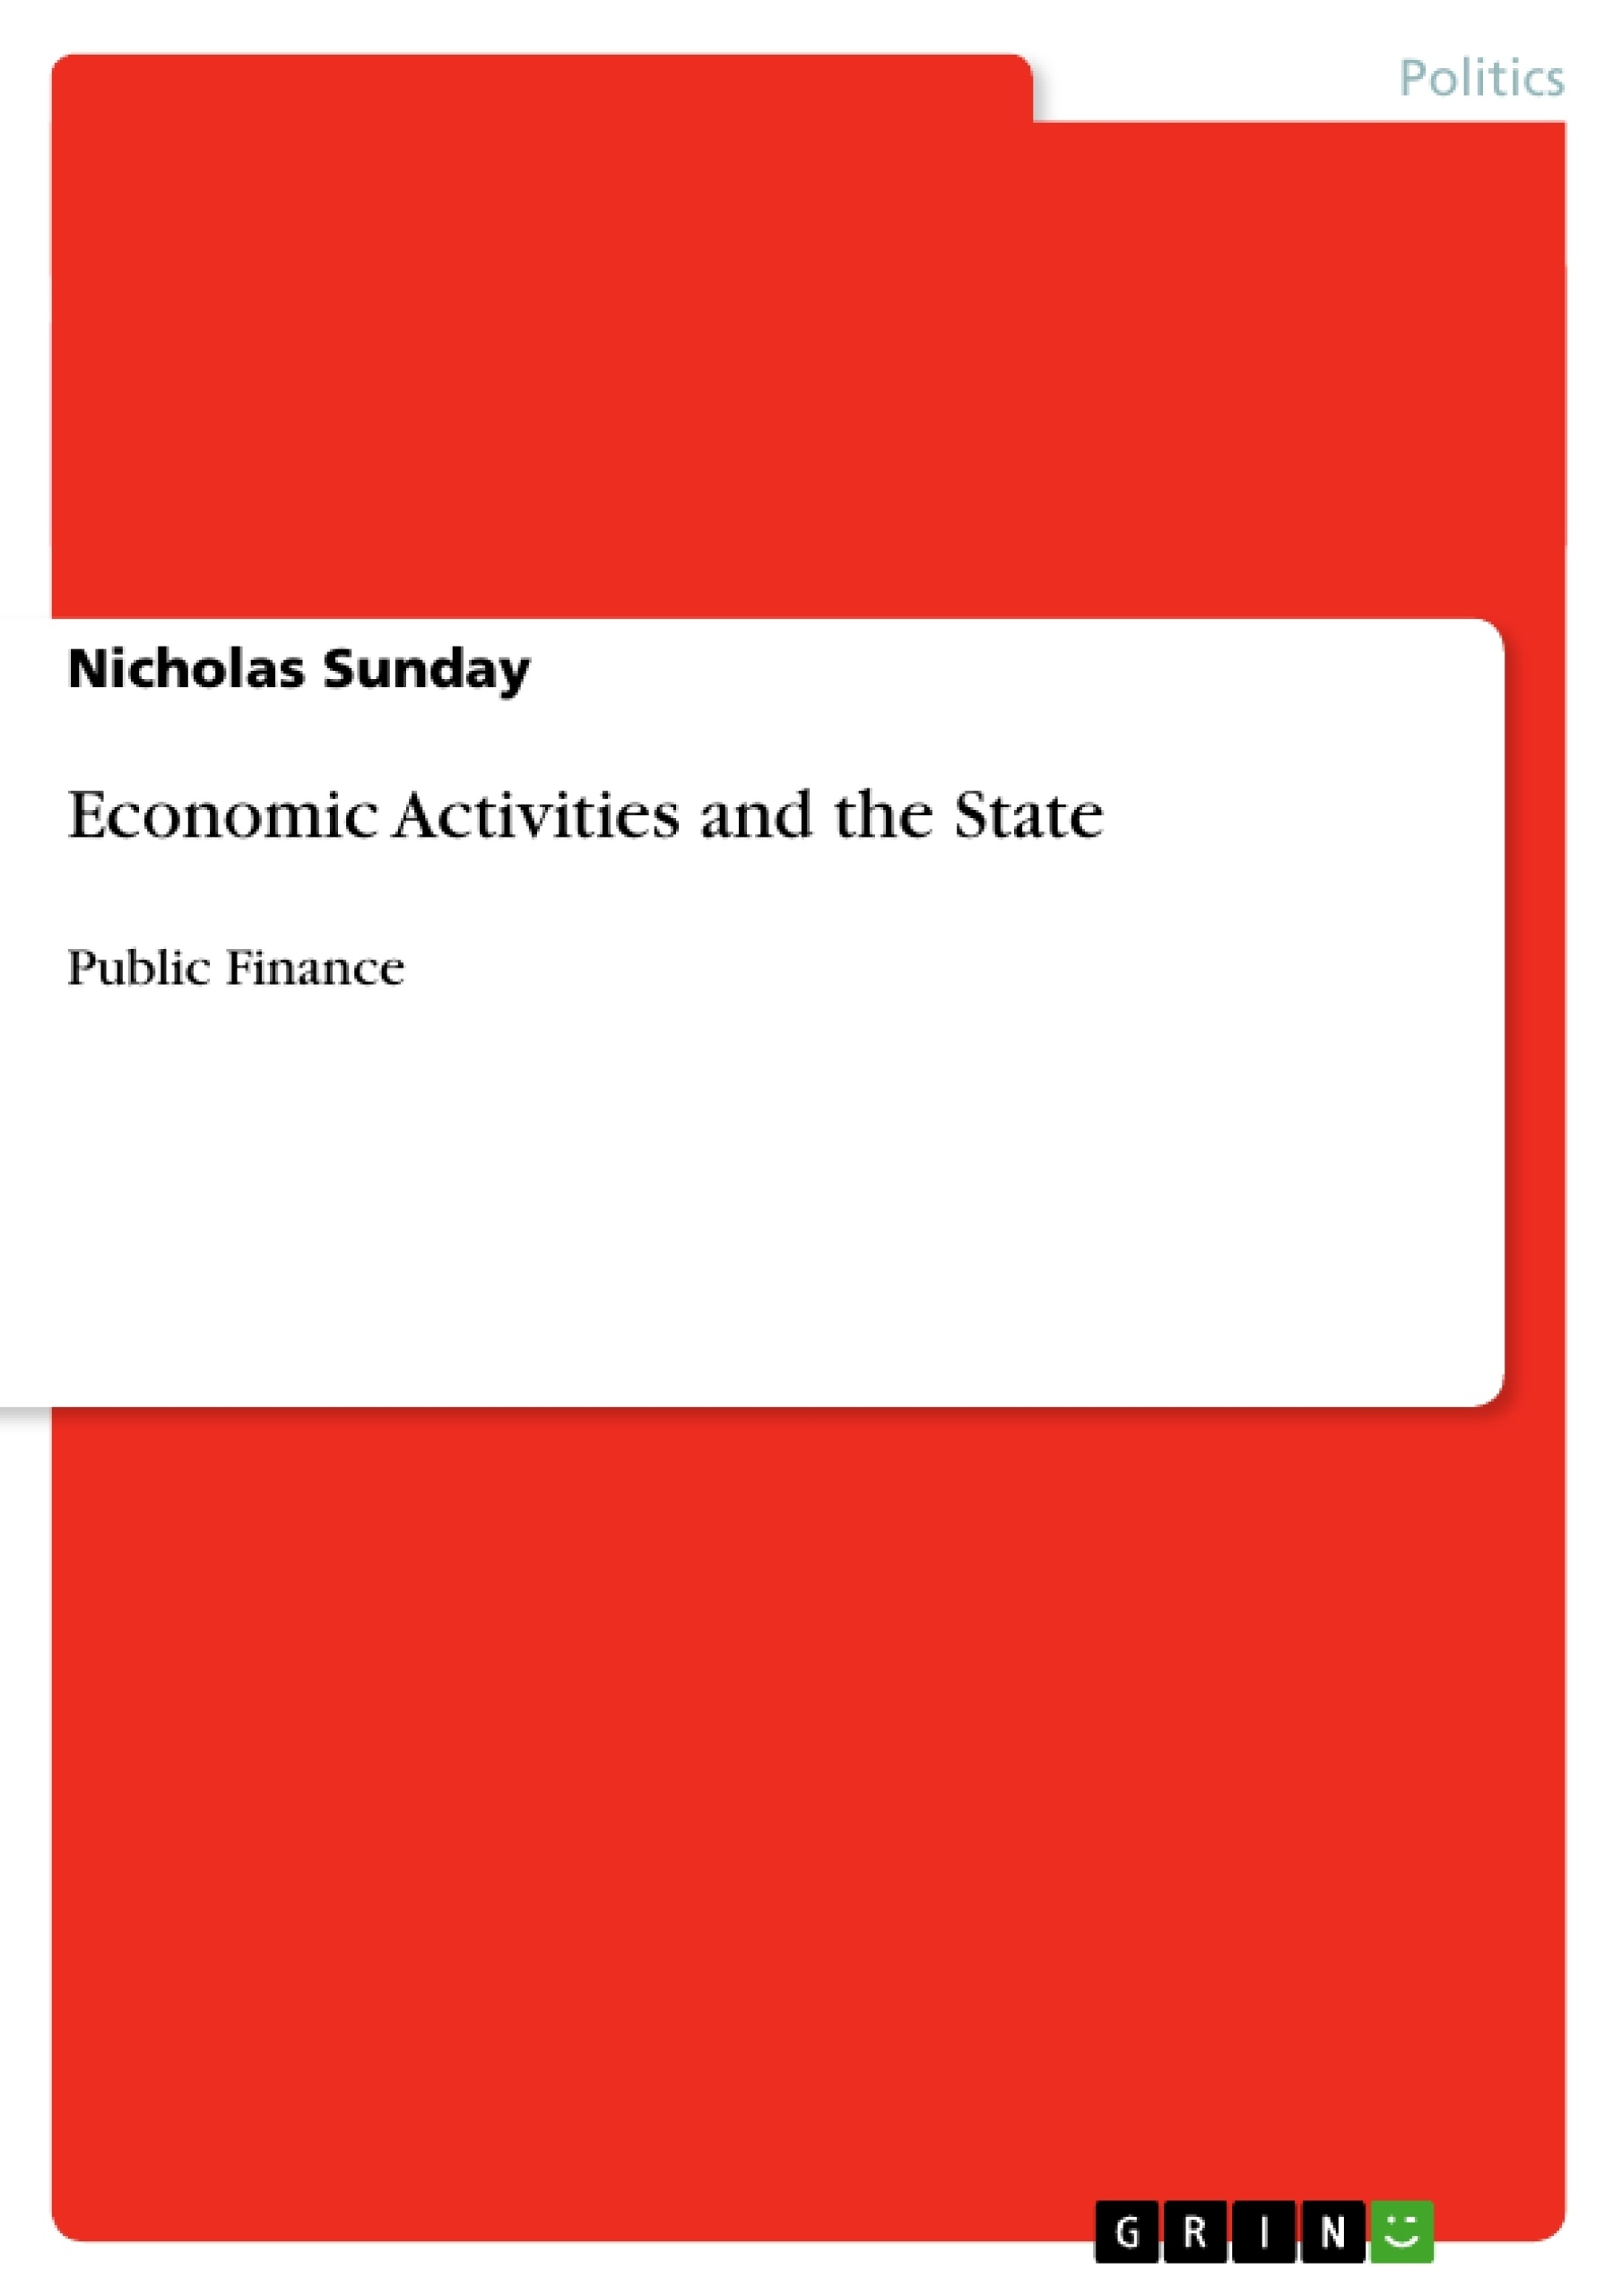 Title: Economic Activities and the State